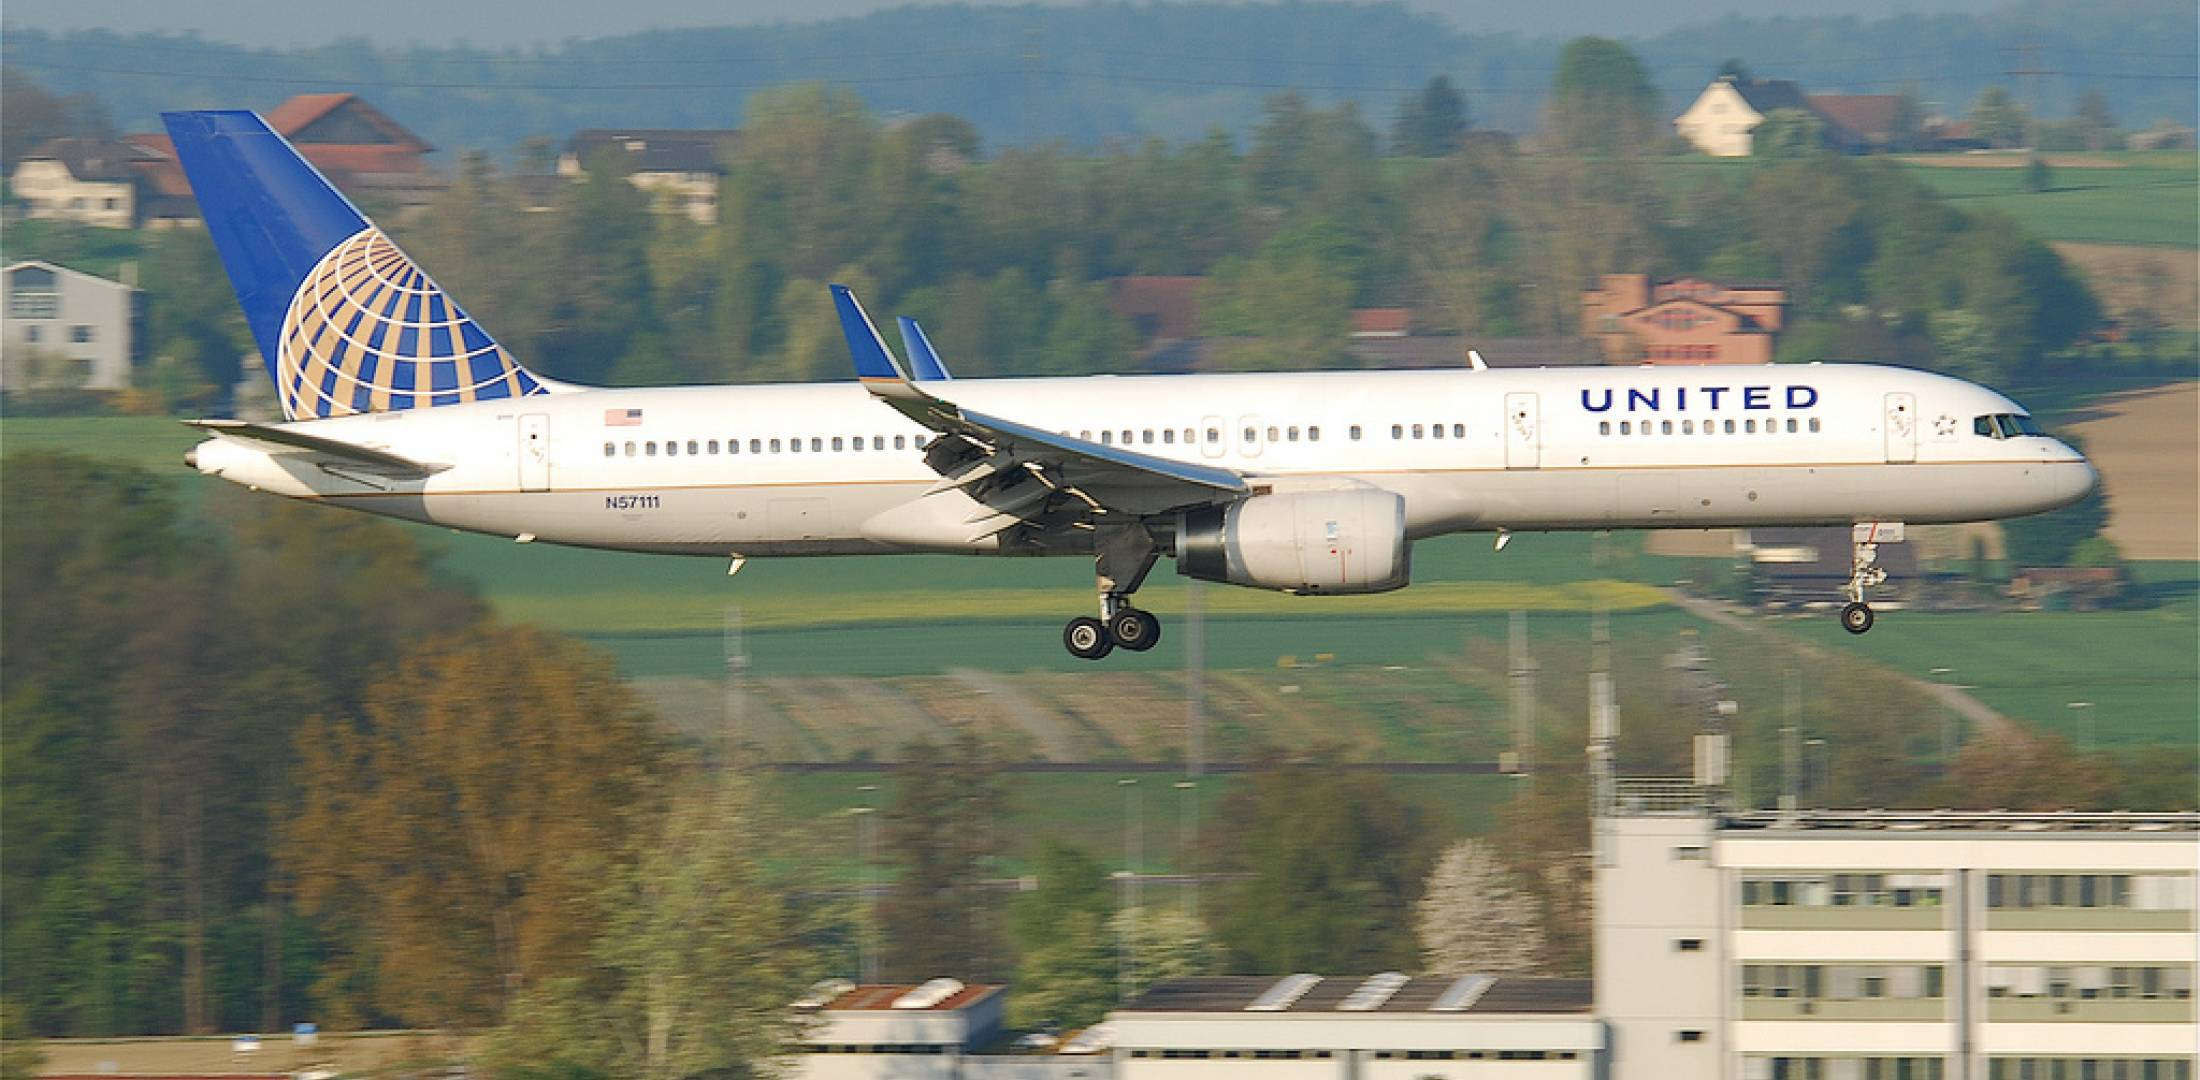 A United Airlines Boeing 757 approaches for landing at Zurich International  Airport. (Photo: Flickr: Creative Commons (BY-SA) by Aero Icarus)